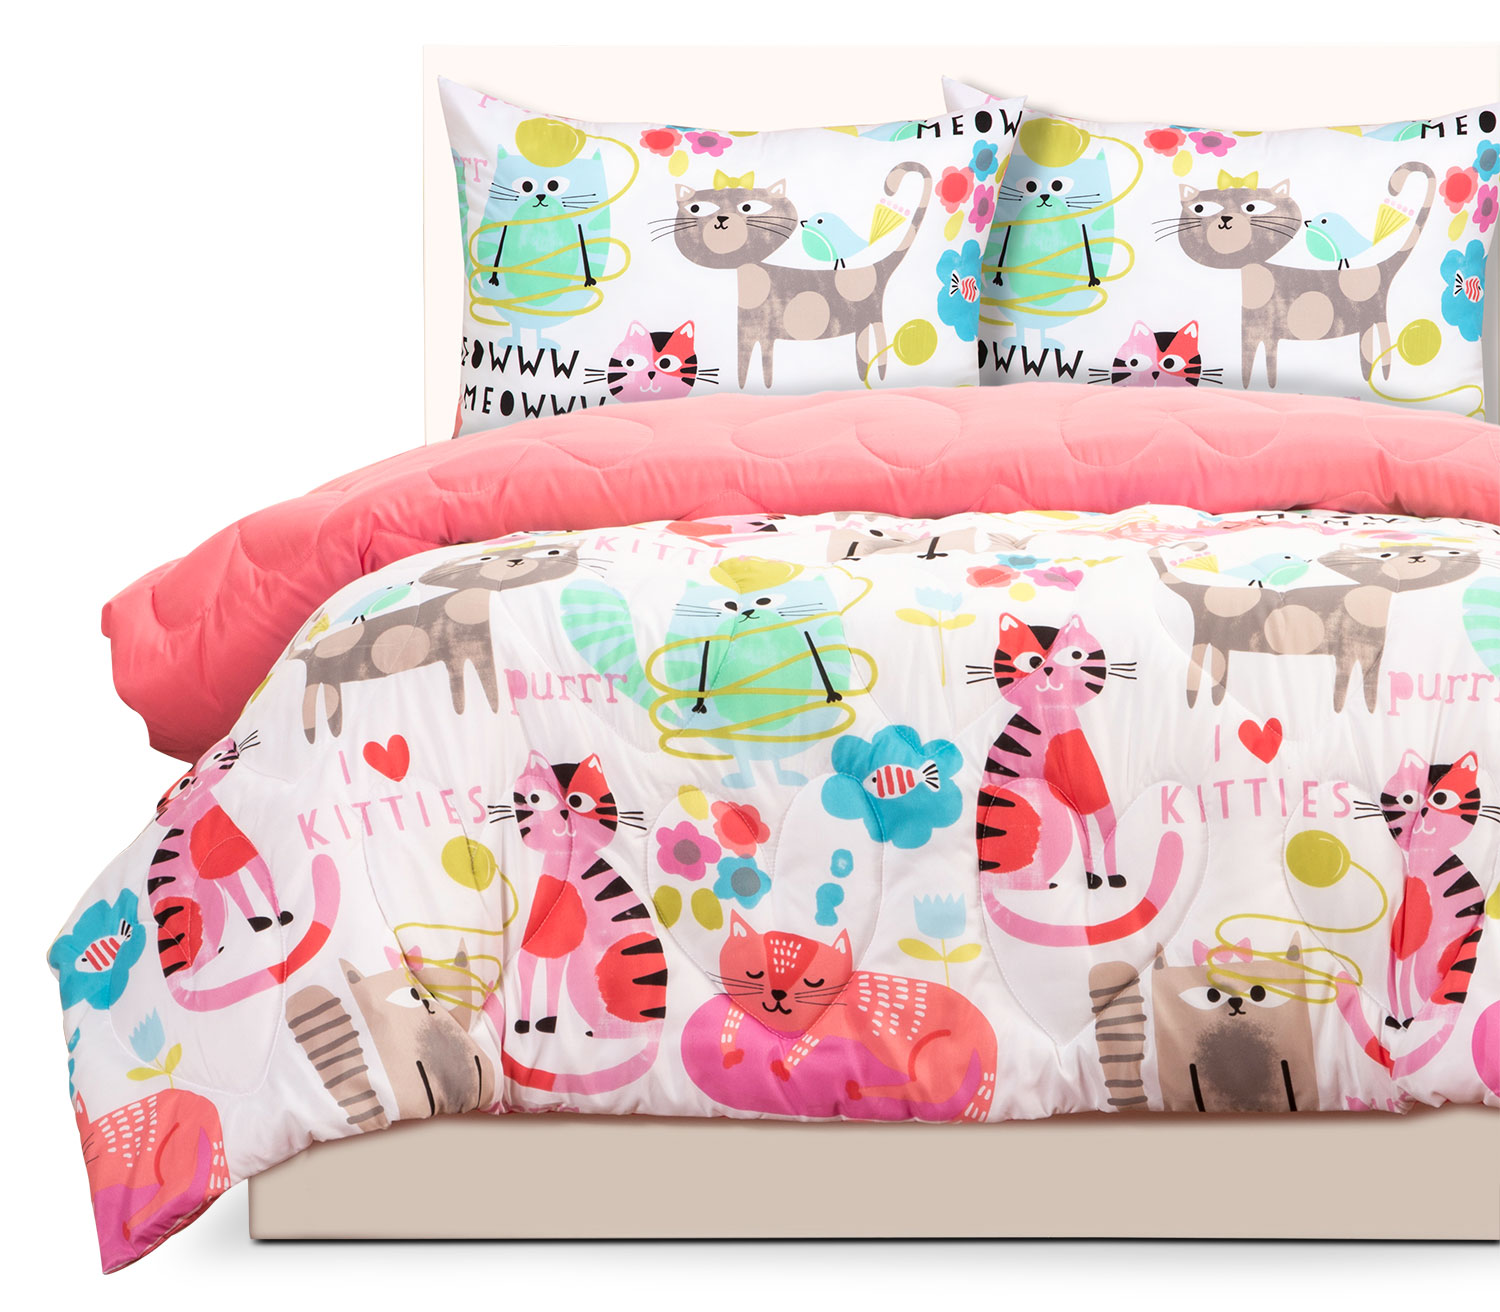 Mattresses and Bedding - Purrty Cat 2-Piece Twin Comforter Set